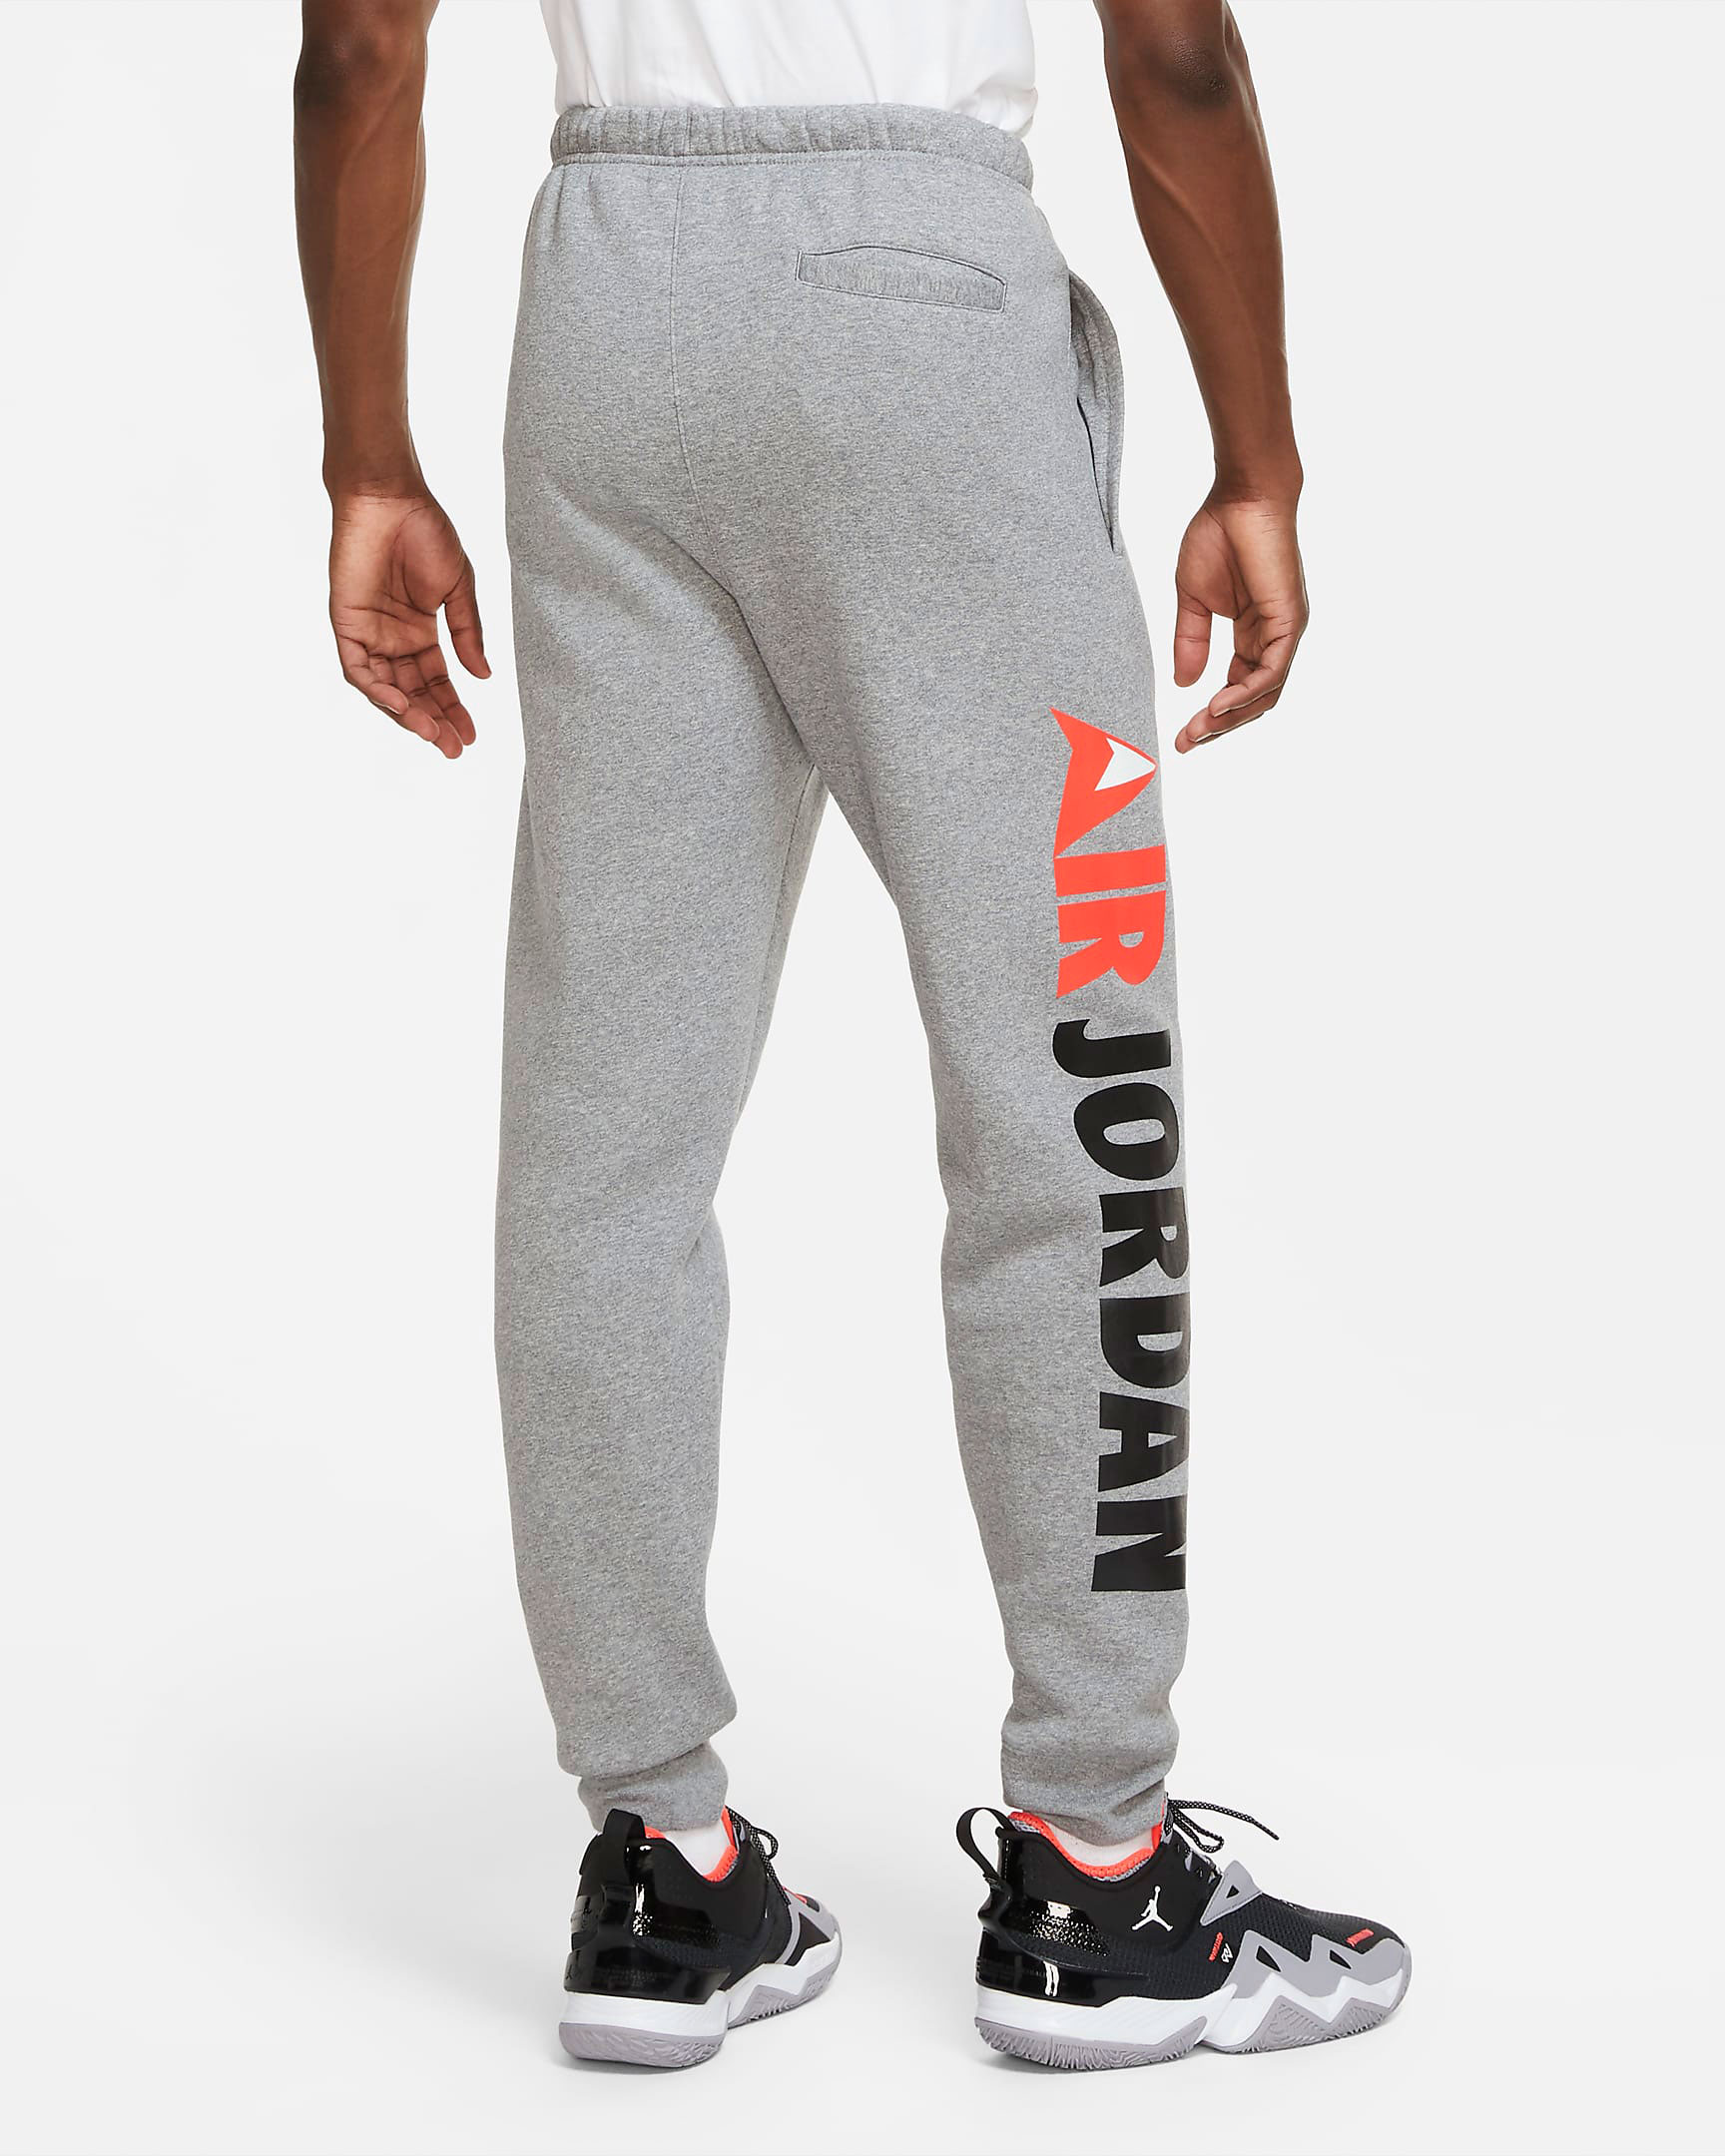 jordan-winter-utility-pants-grey-infrared-2